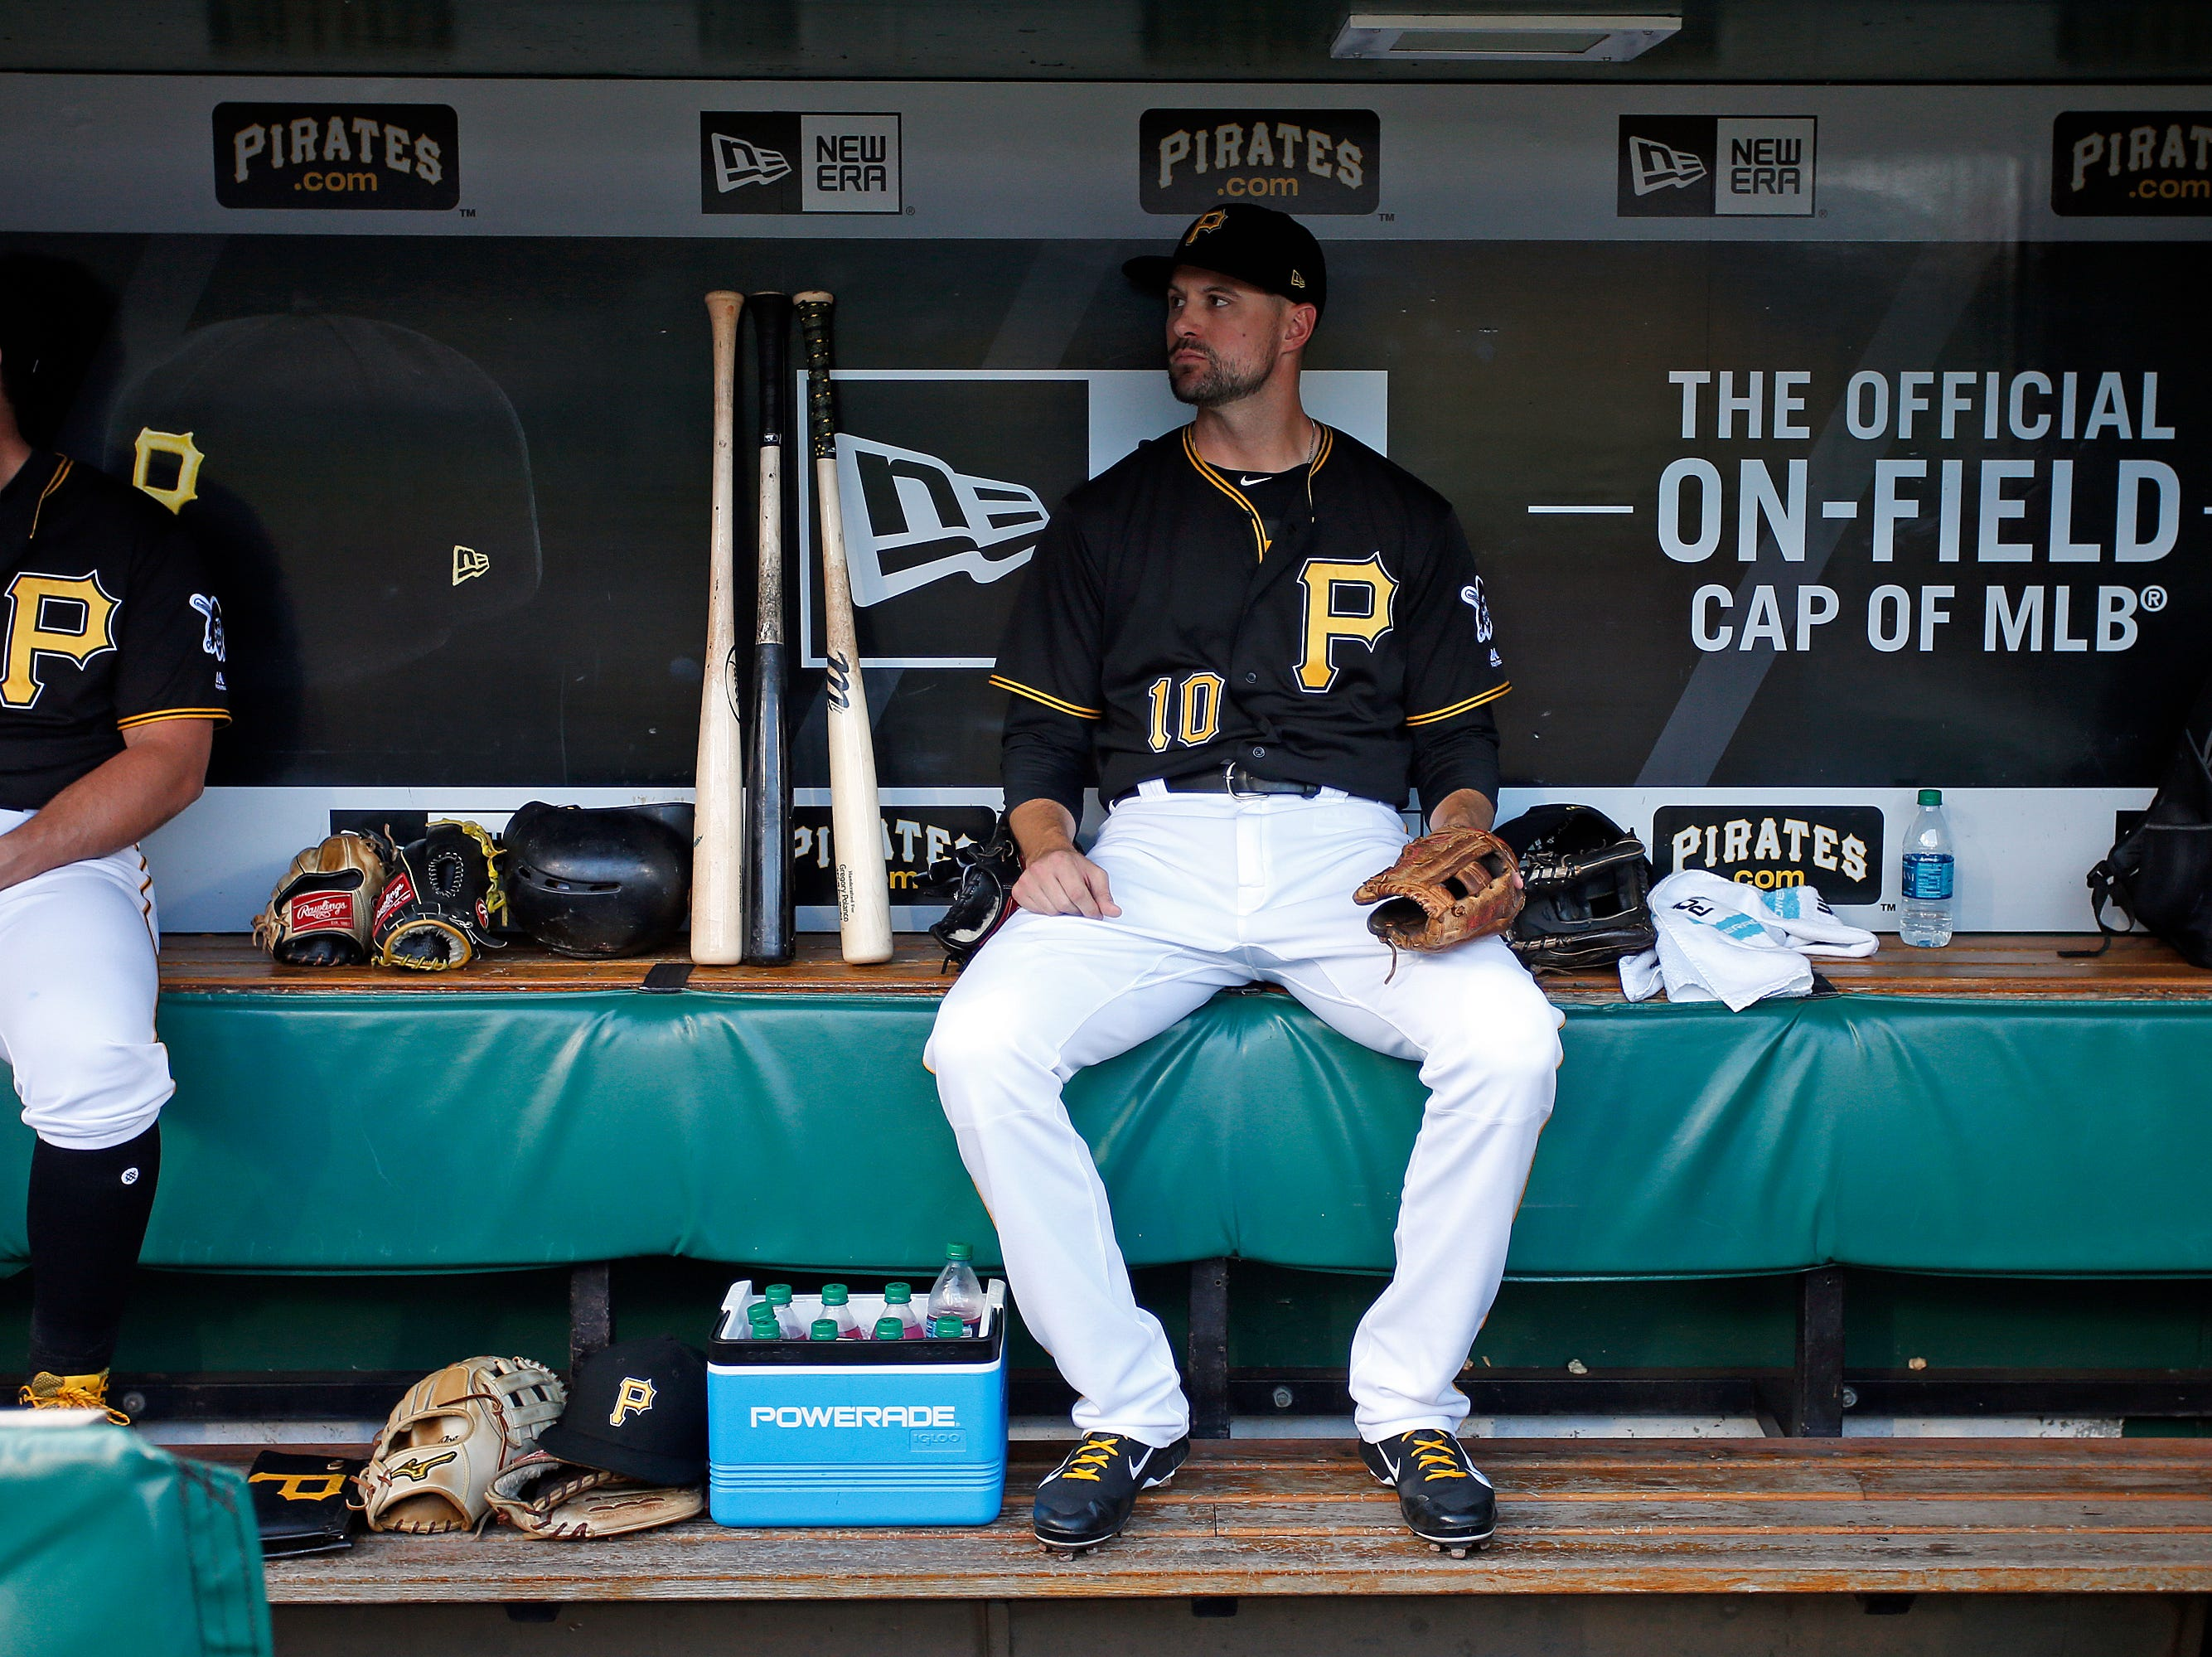 Jordy Mercer of the Pittsburgh Pirates awaits the start of the game against the New York Mets at PNC Park on July 27, 2018 in Pittsburgh, Pennsylvania.